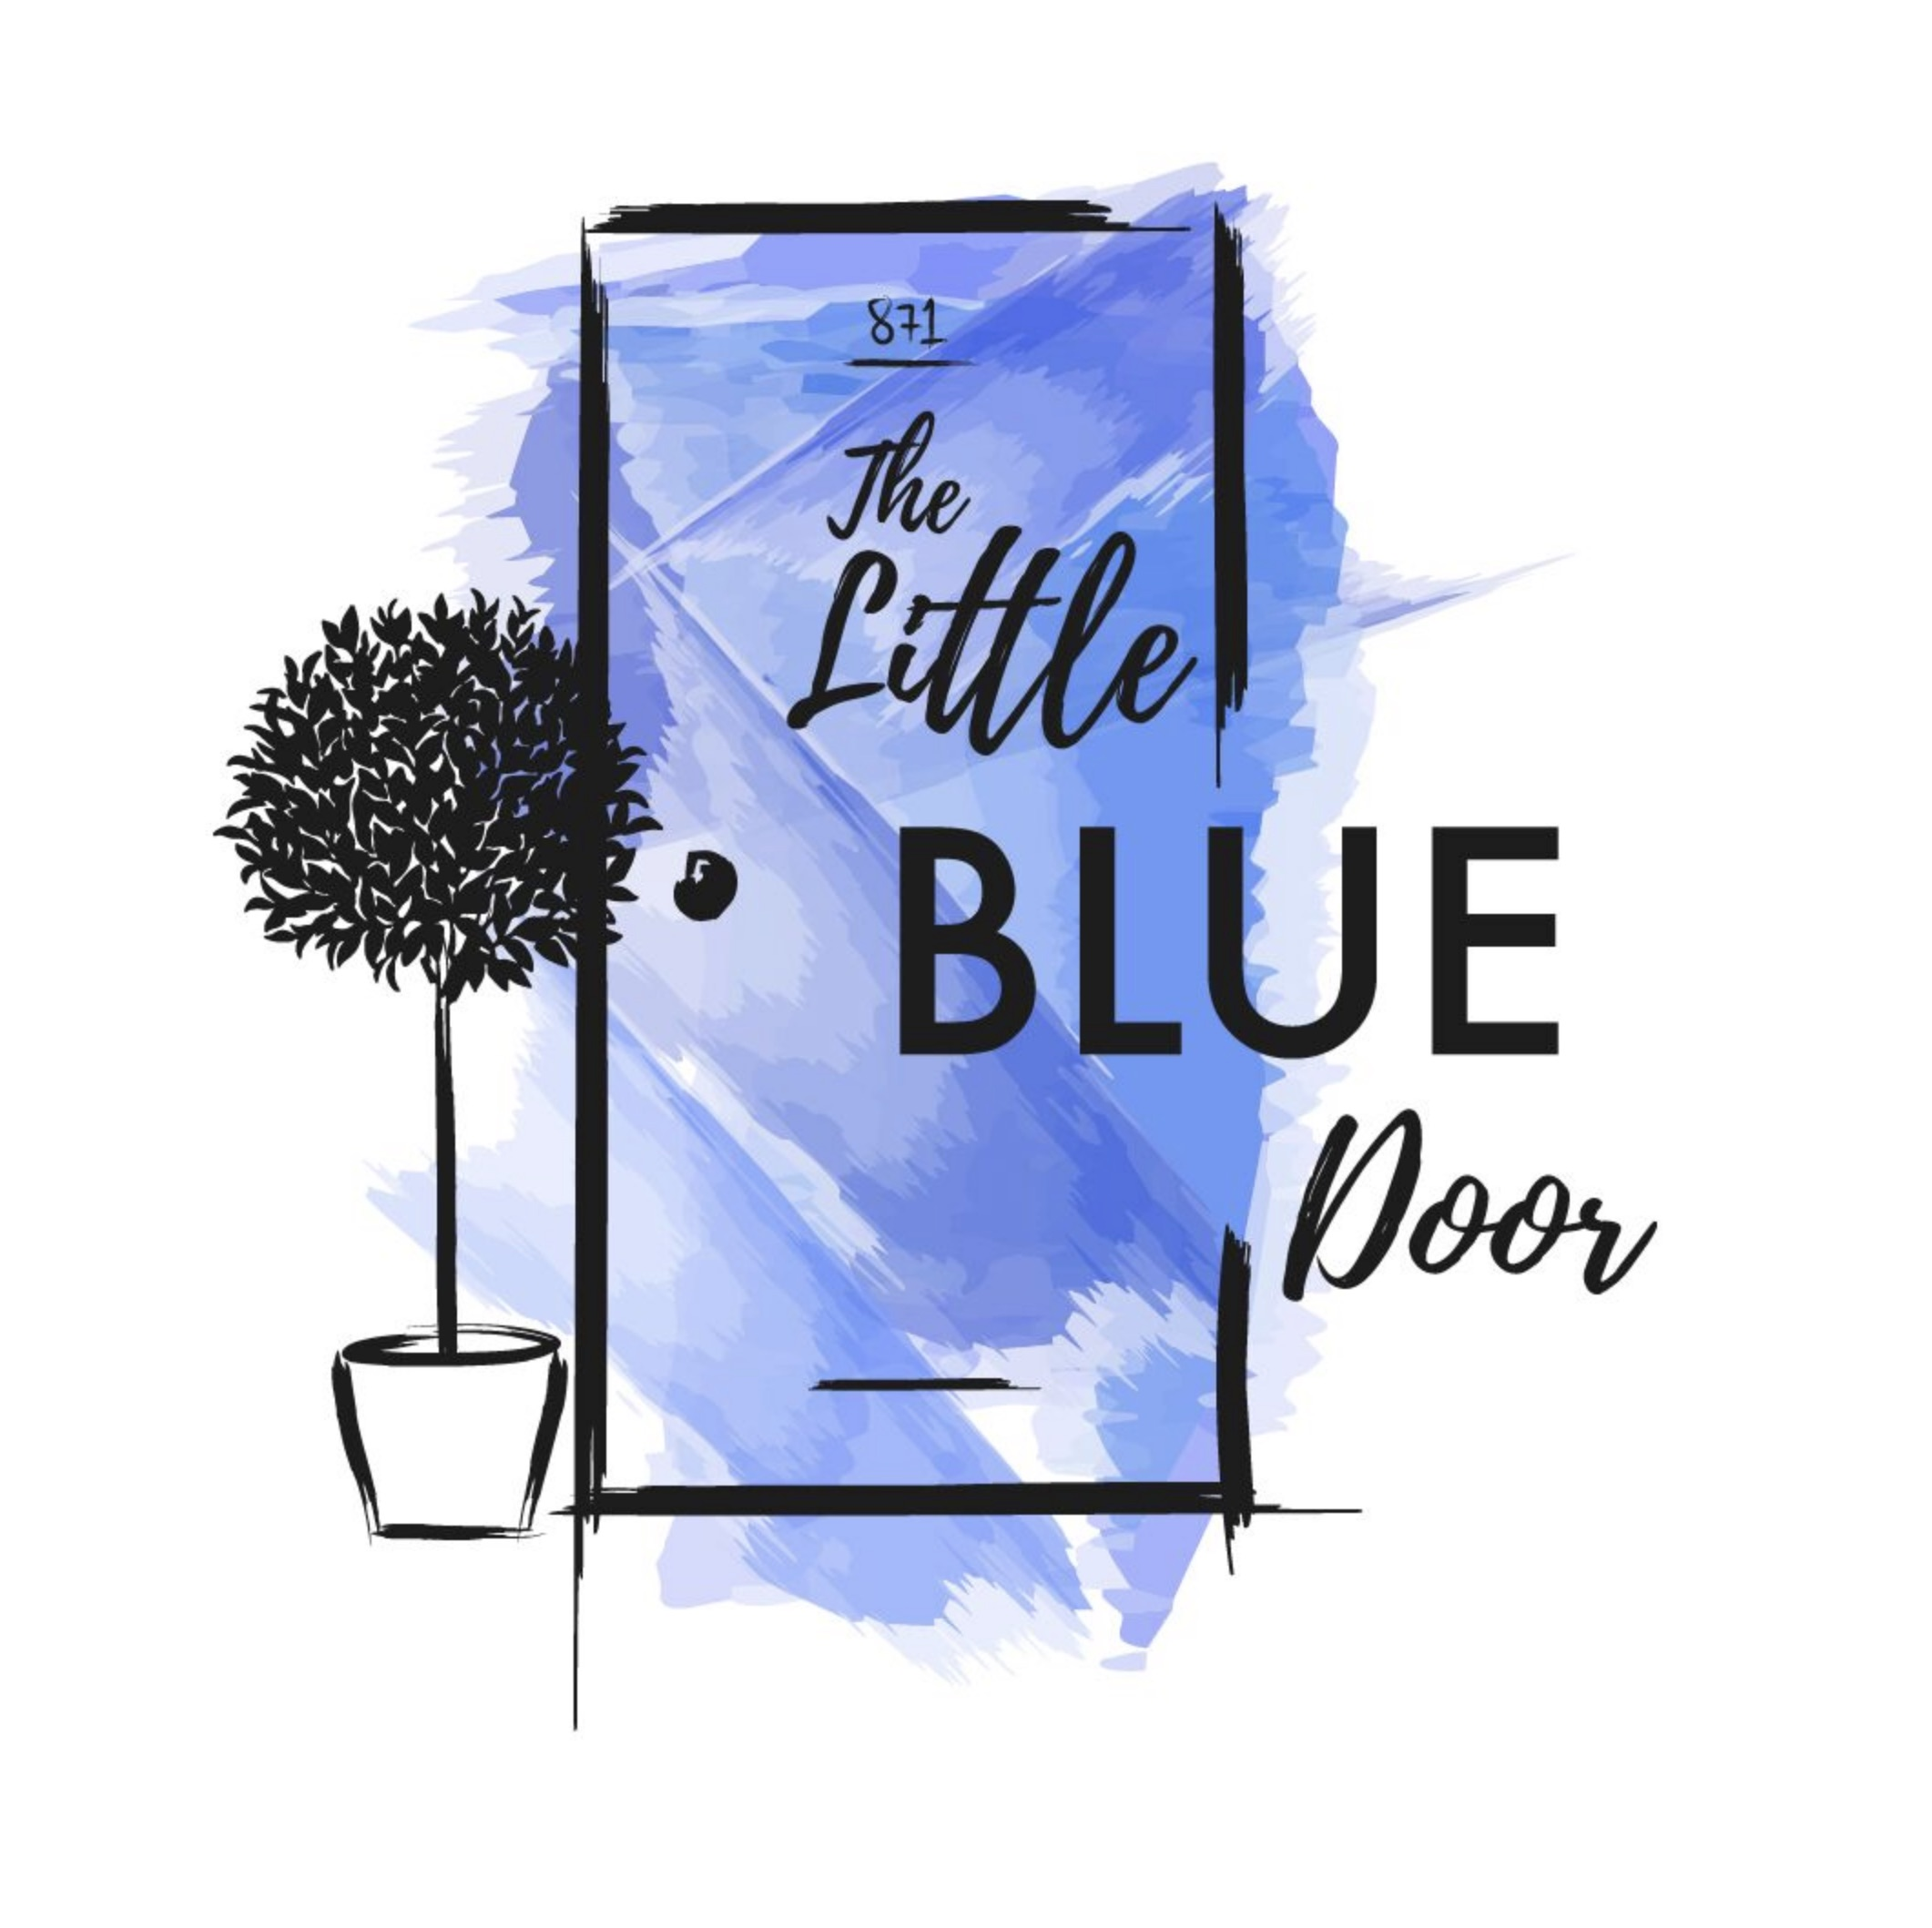 The Little Blue Door logo